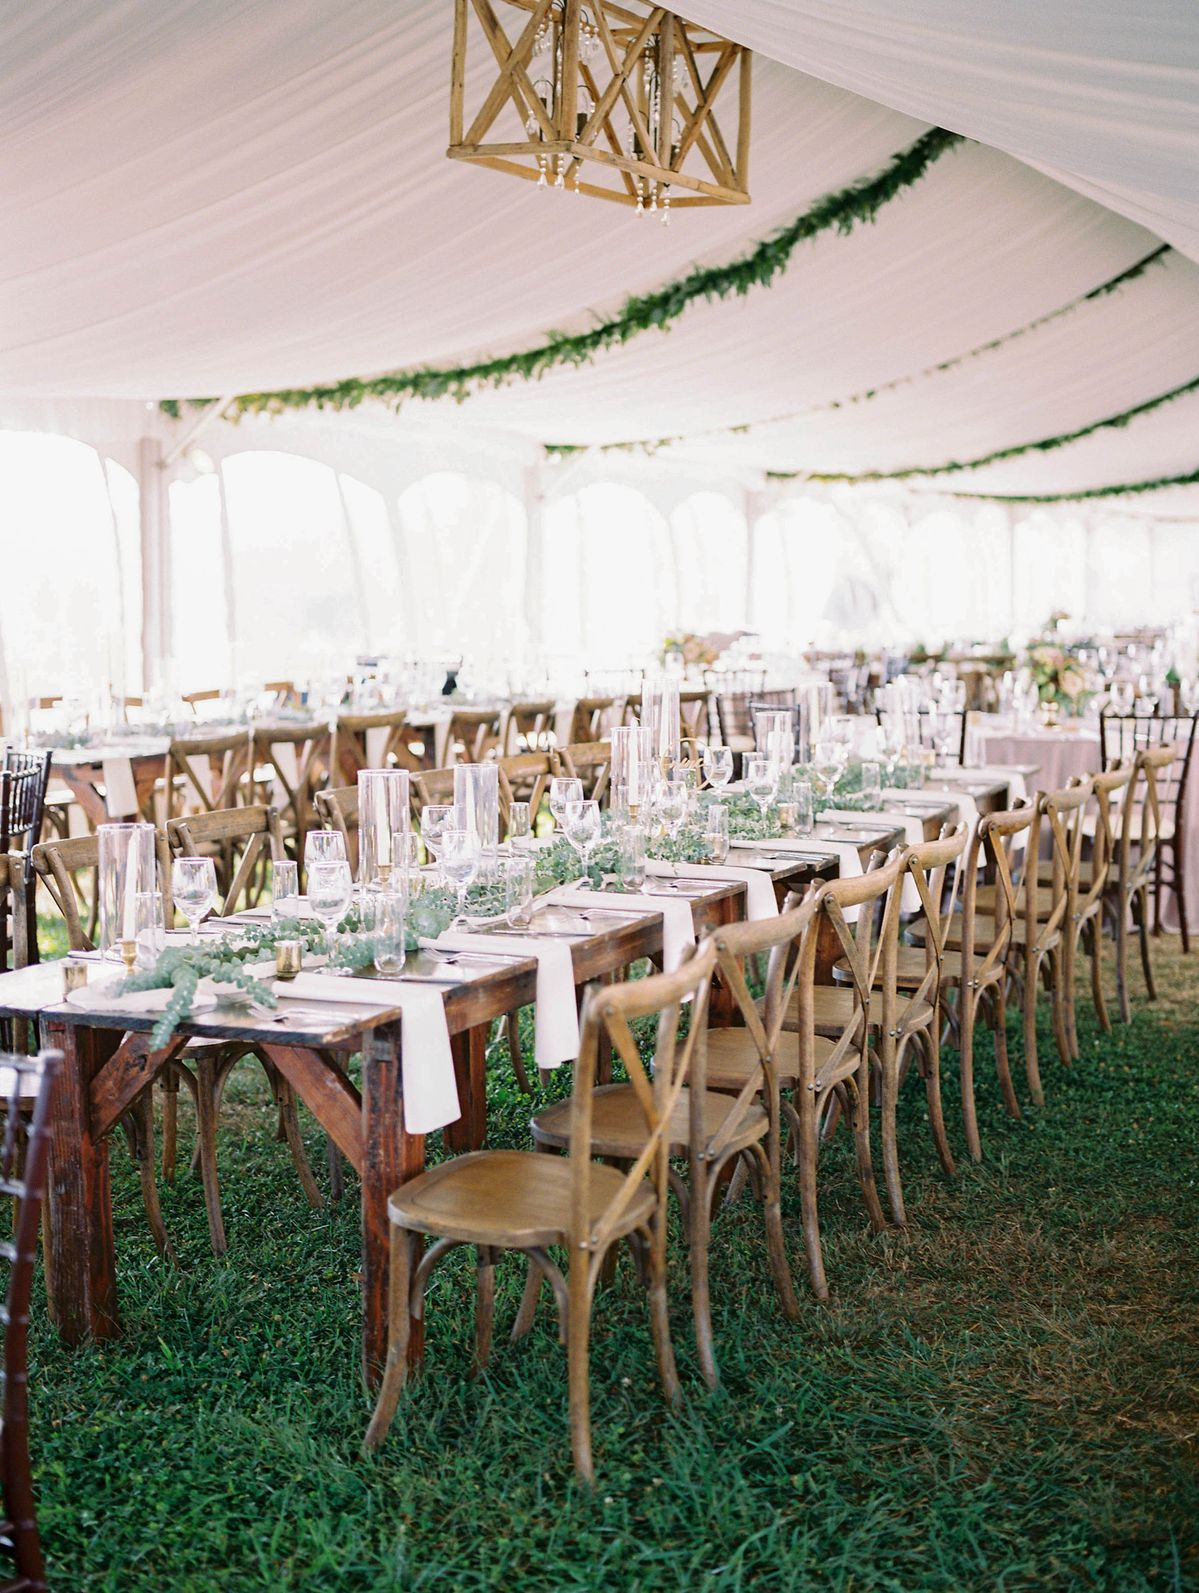 Now this is how you have a wedding reception in a tent!